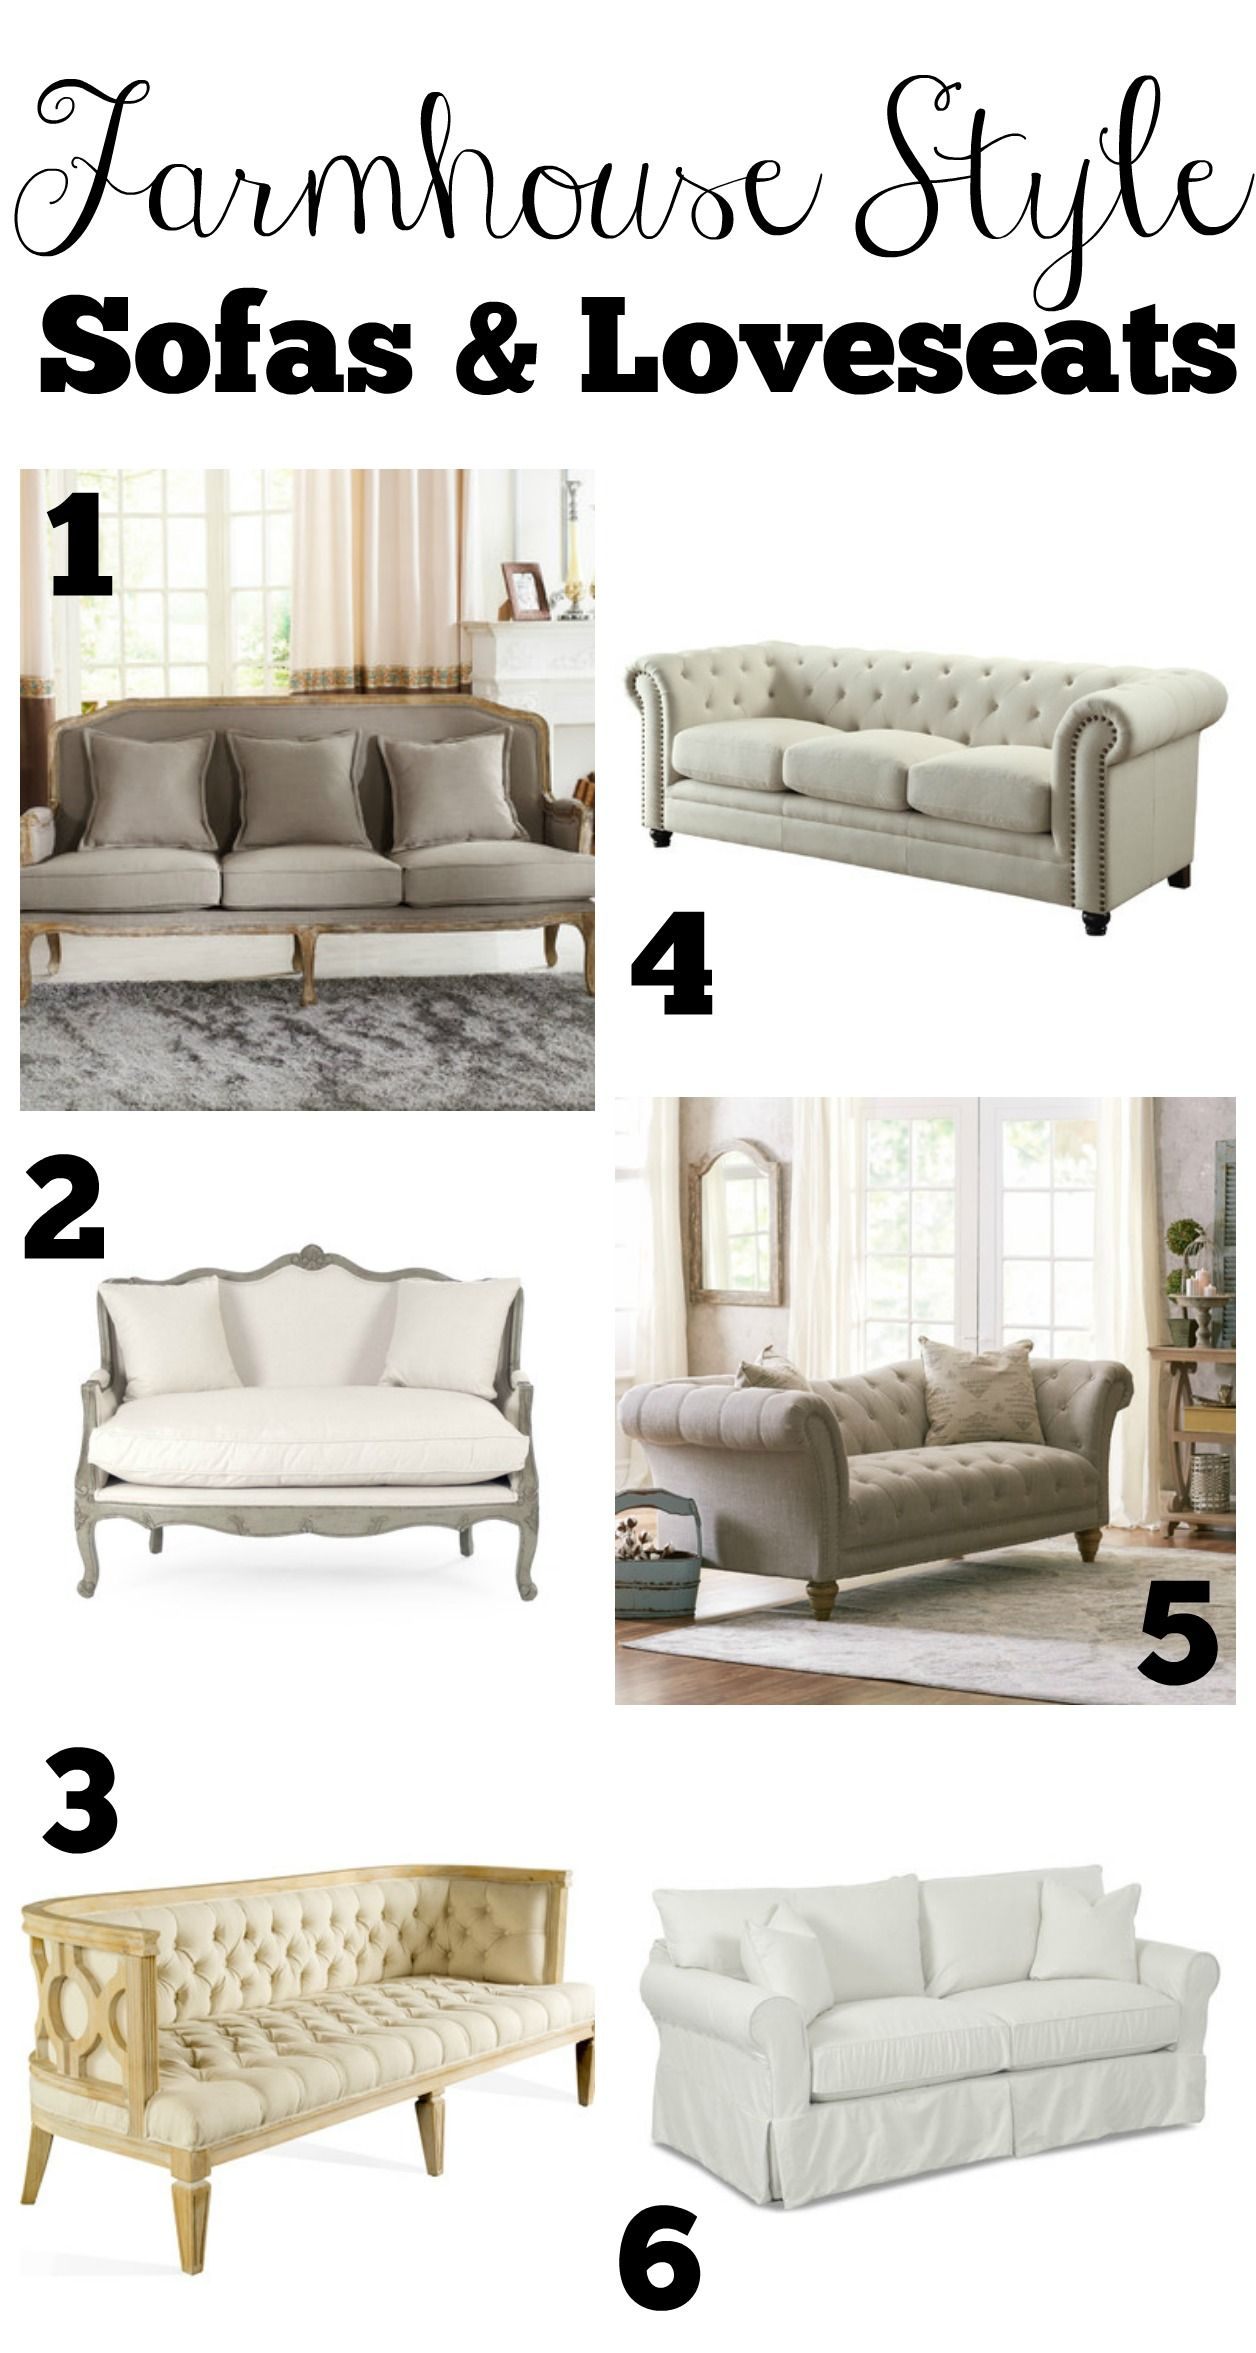 transitioning to farmhouse style shopping guide in 2019 my rh pinterest com cottage style sofas uk cottage style sofas uk